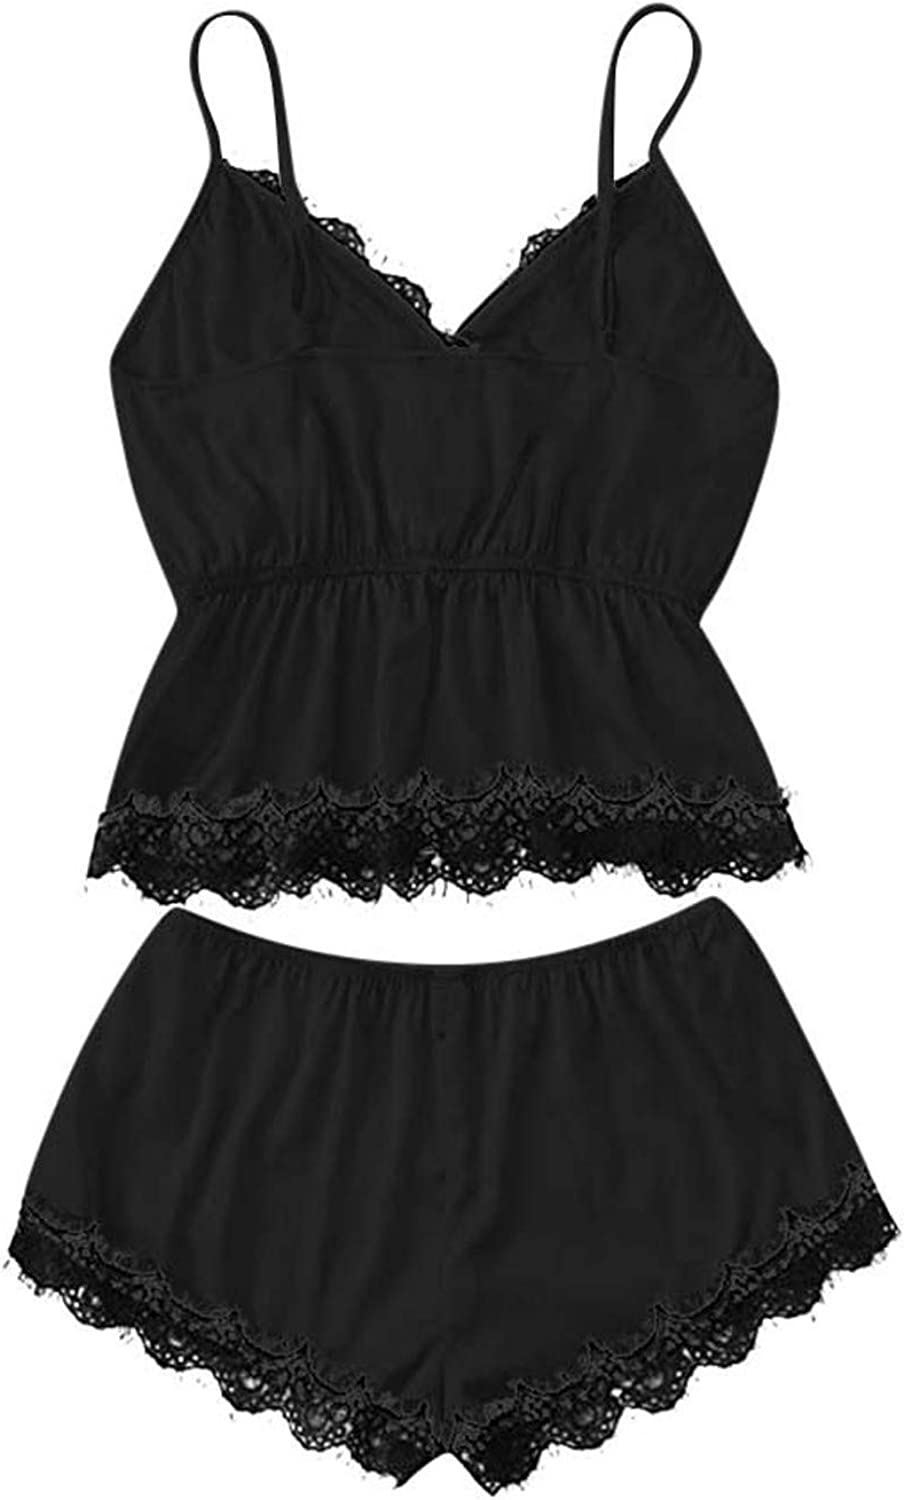 Maryia Women's Sleepwear Floral Lace Trim Satin Strap Cami Lingerie Short and Panty 2pcs Pajama Set Camisole Nightgown Black